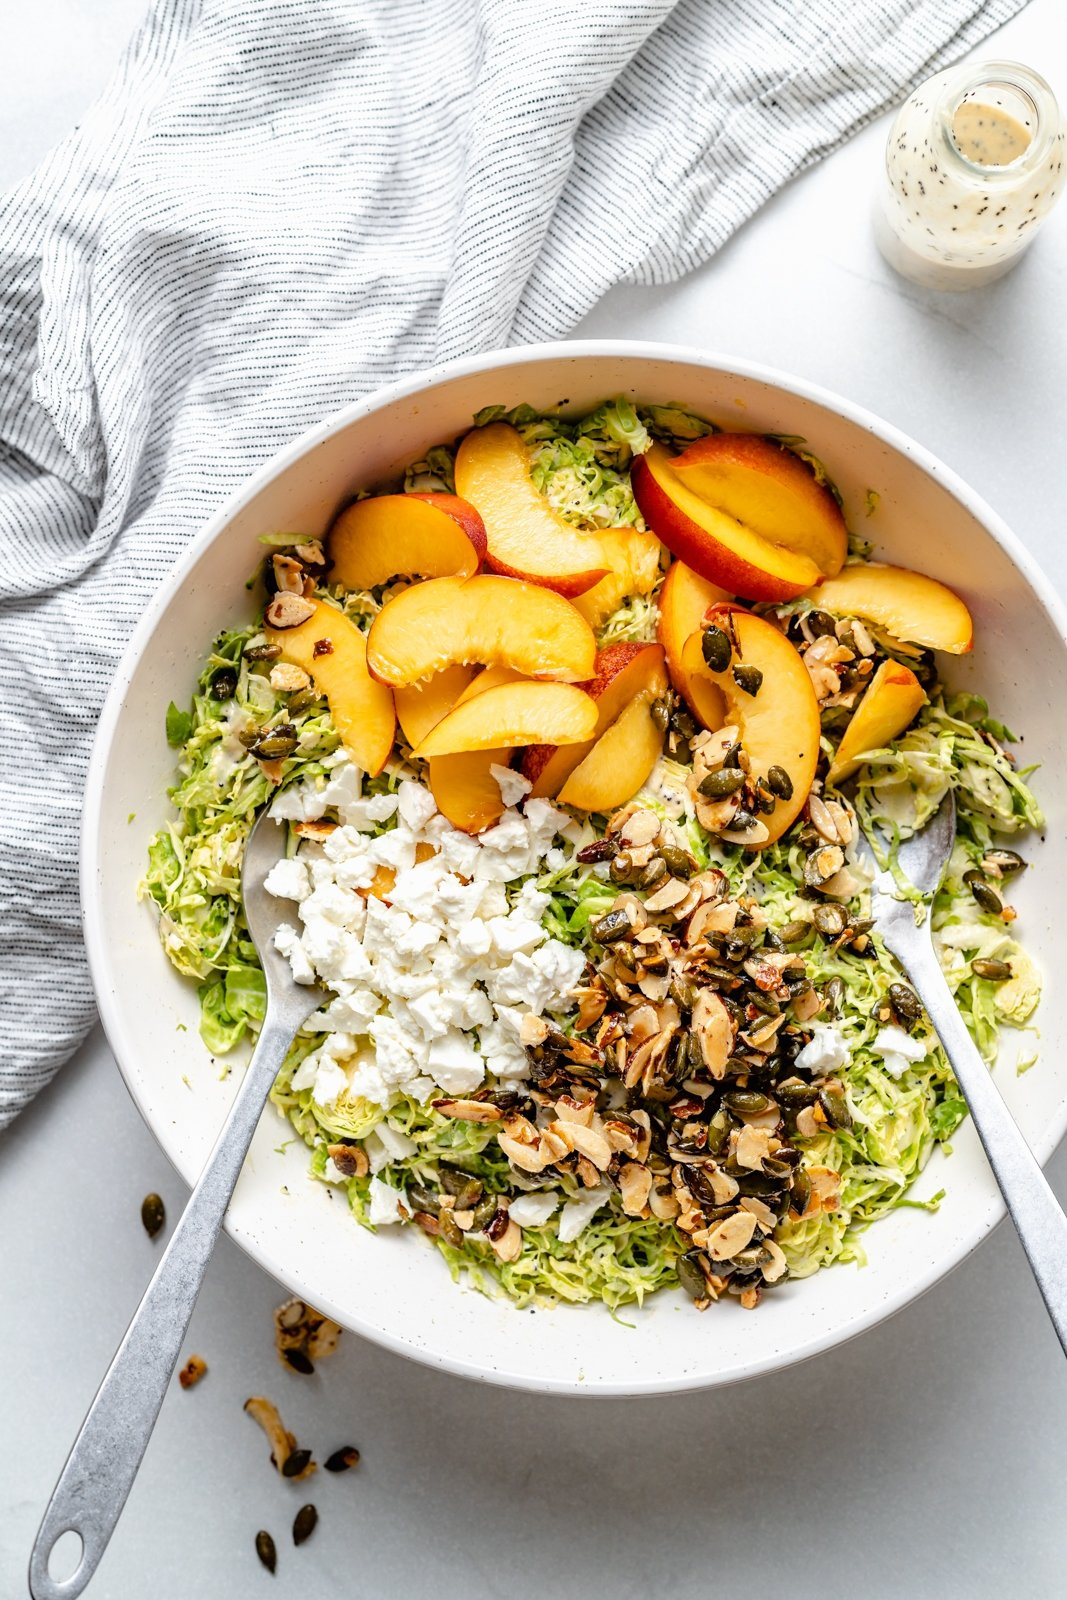 peach brussels sprouts salad in a bowl